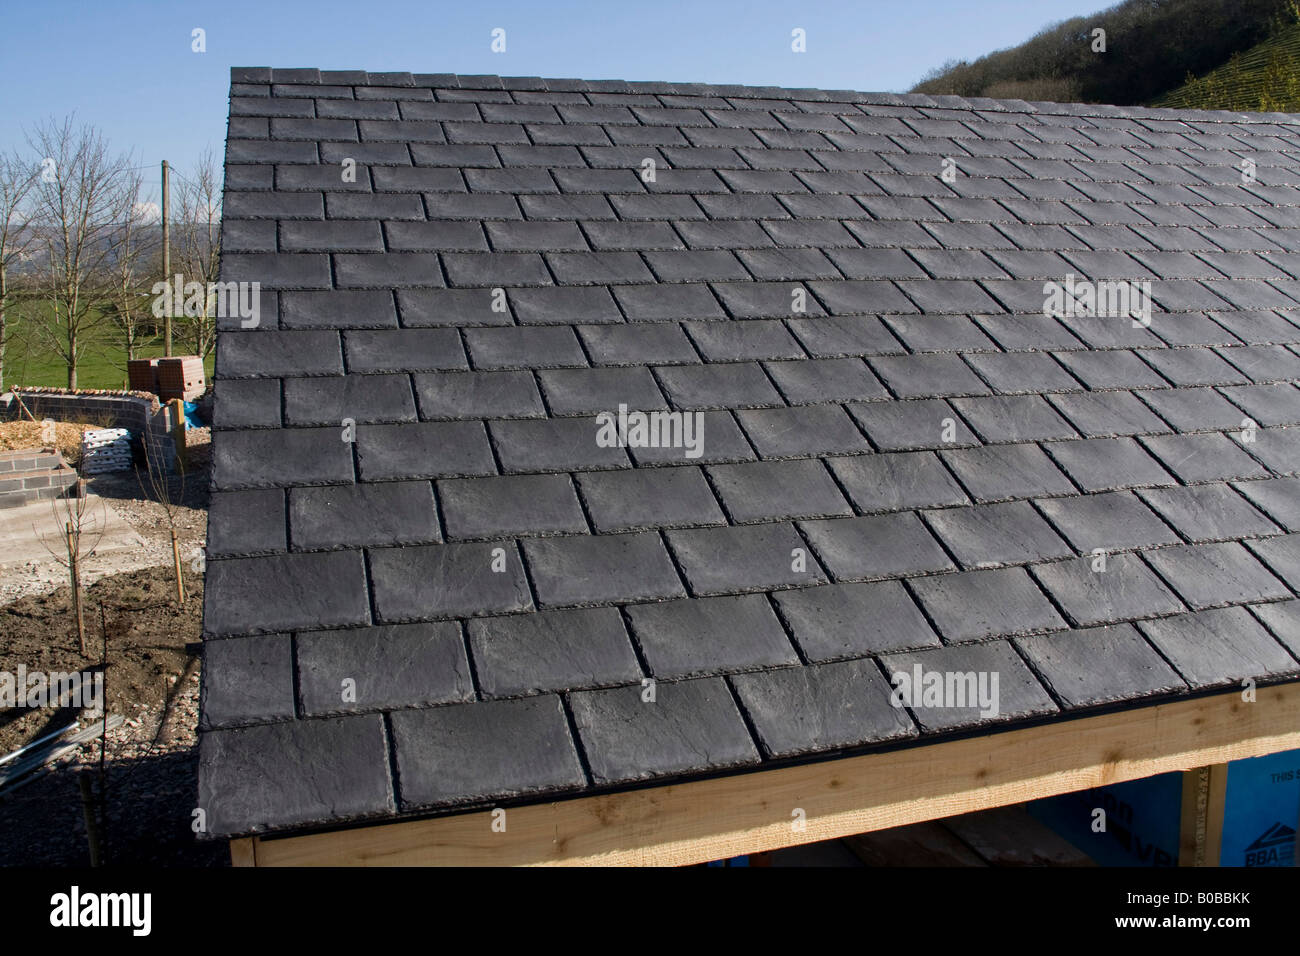 Replica Slate Roof Tiles Made From Recycled Rubber Car Tyreu0027s